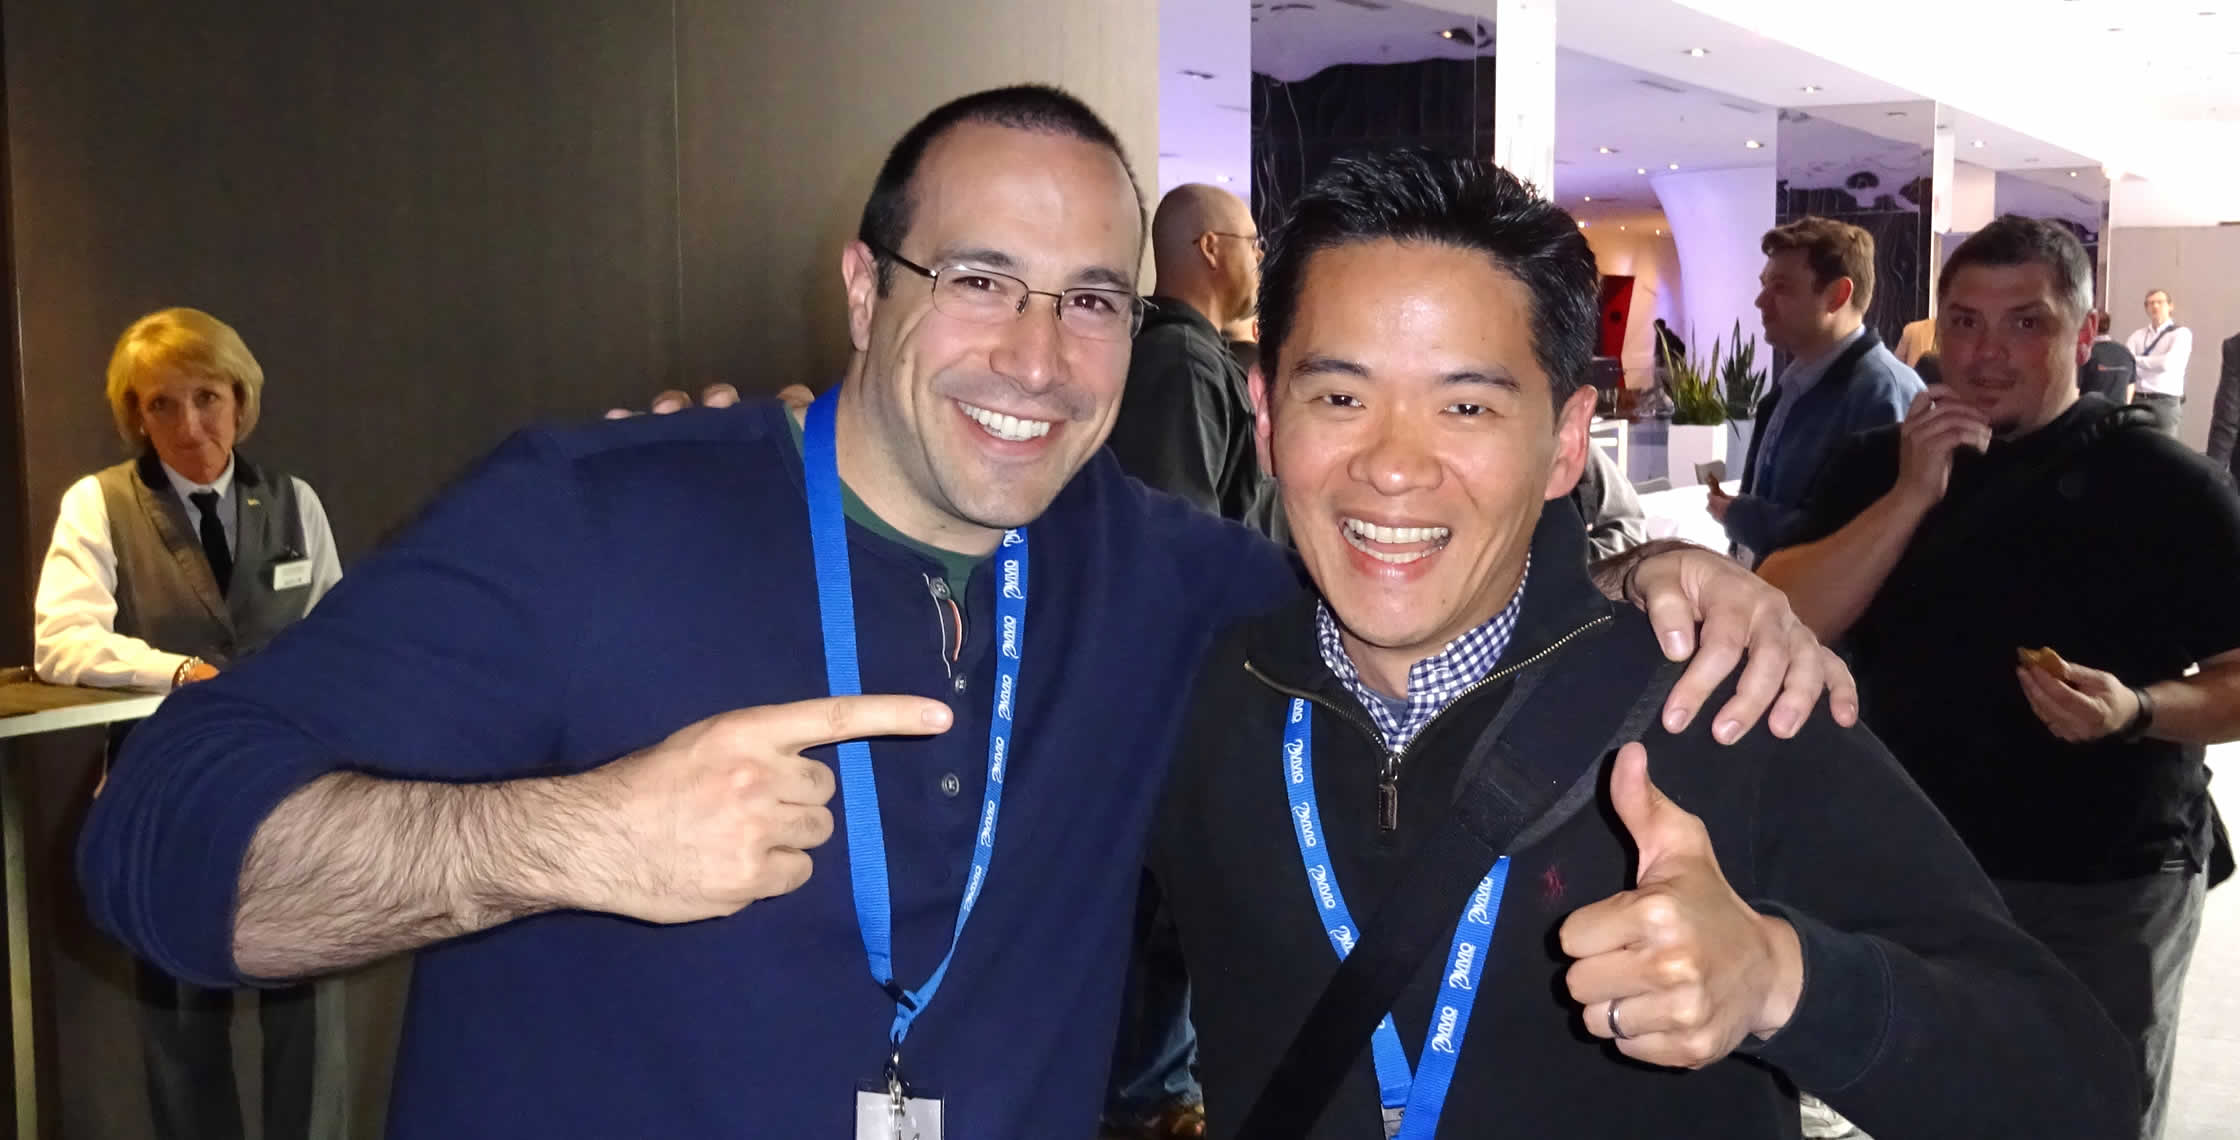 Ben Nadel at cf.Objective() 2014 (Bloomington, MN) with: Jin Park